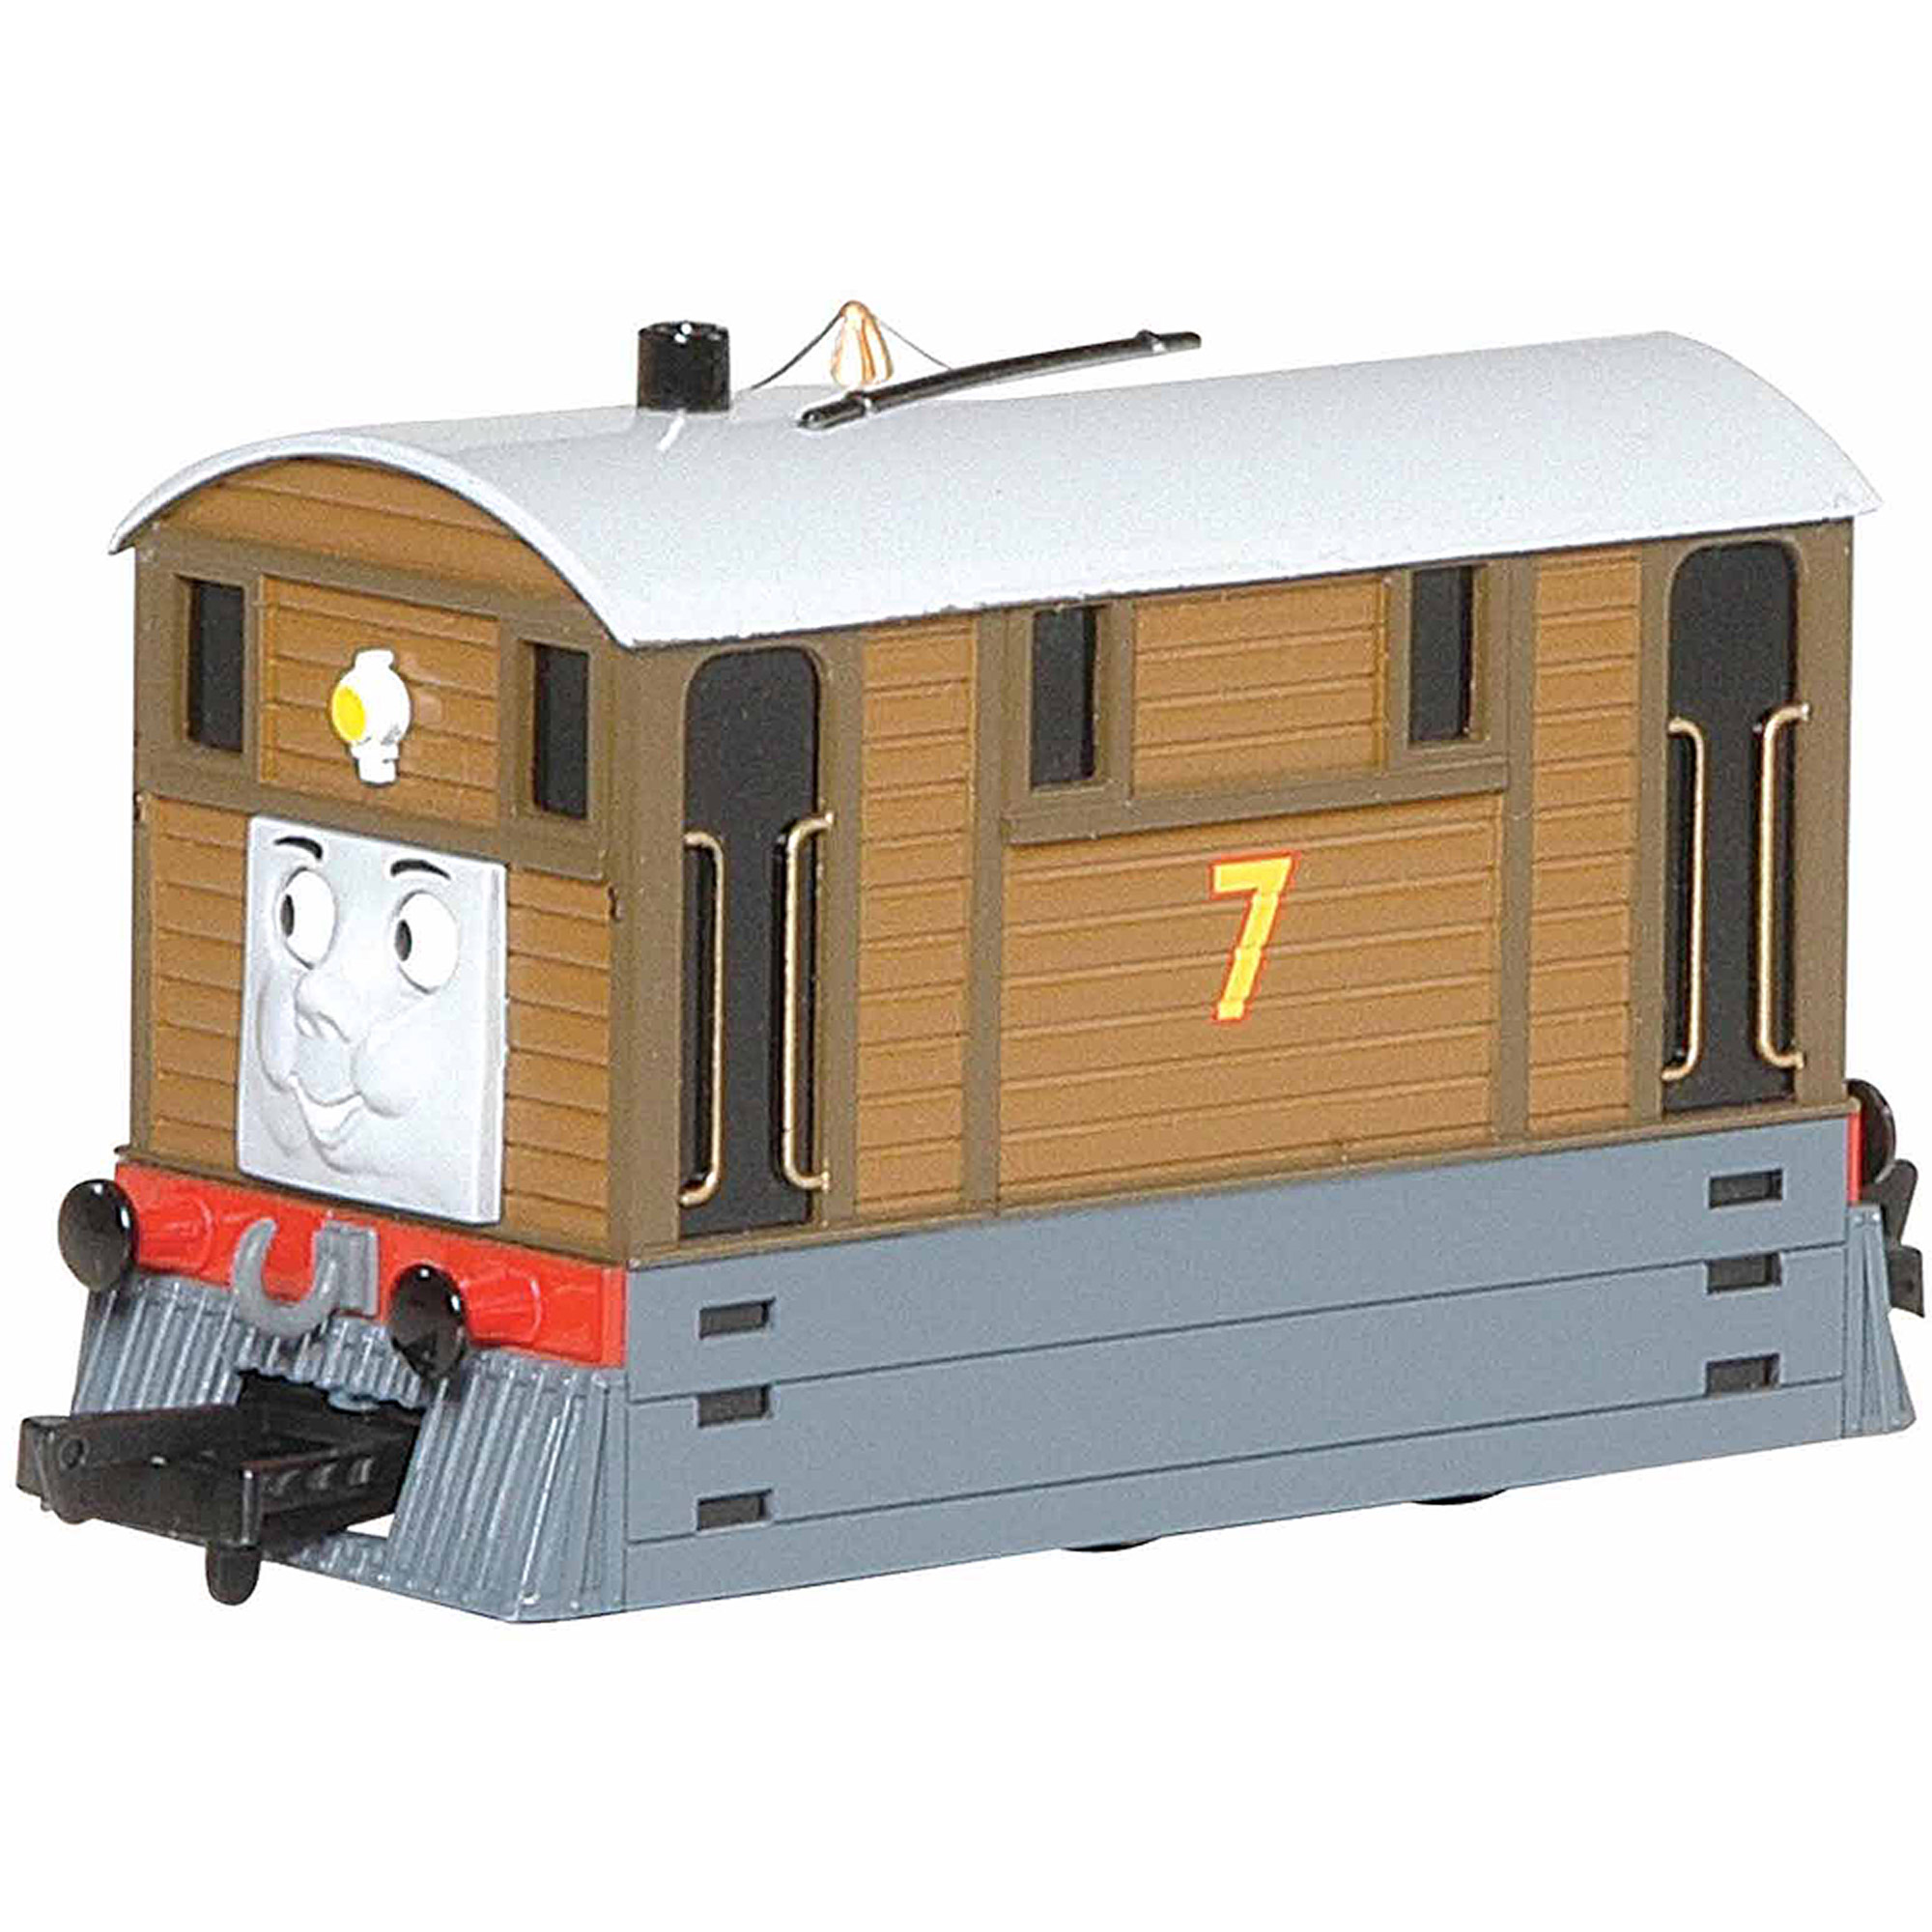 Bachmann Trains Thomas and Friends Toby The Tram Engine Locomotive with Moving Eyes, HO Scale Train